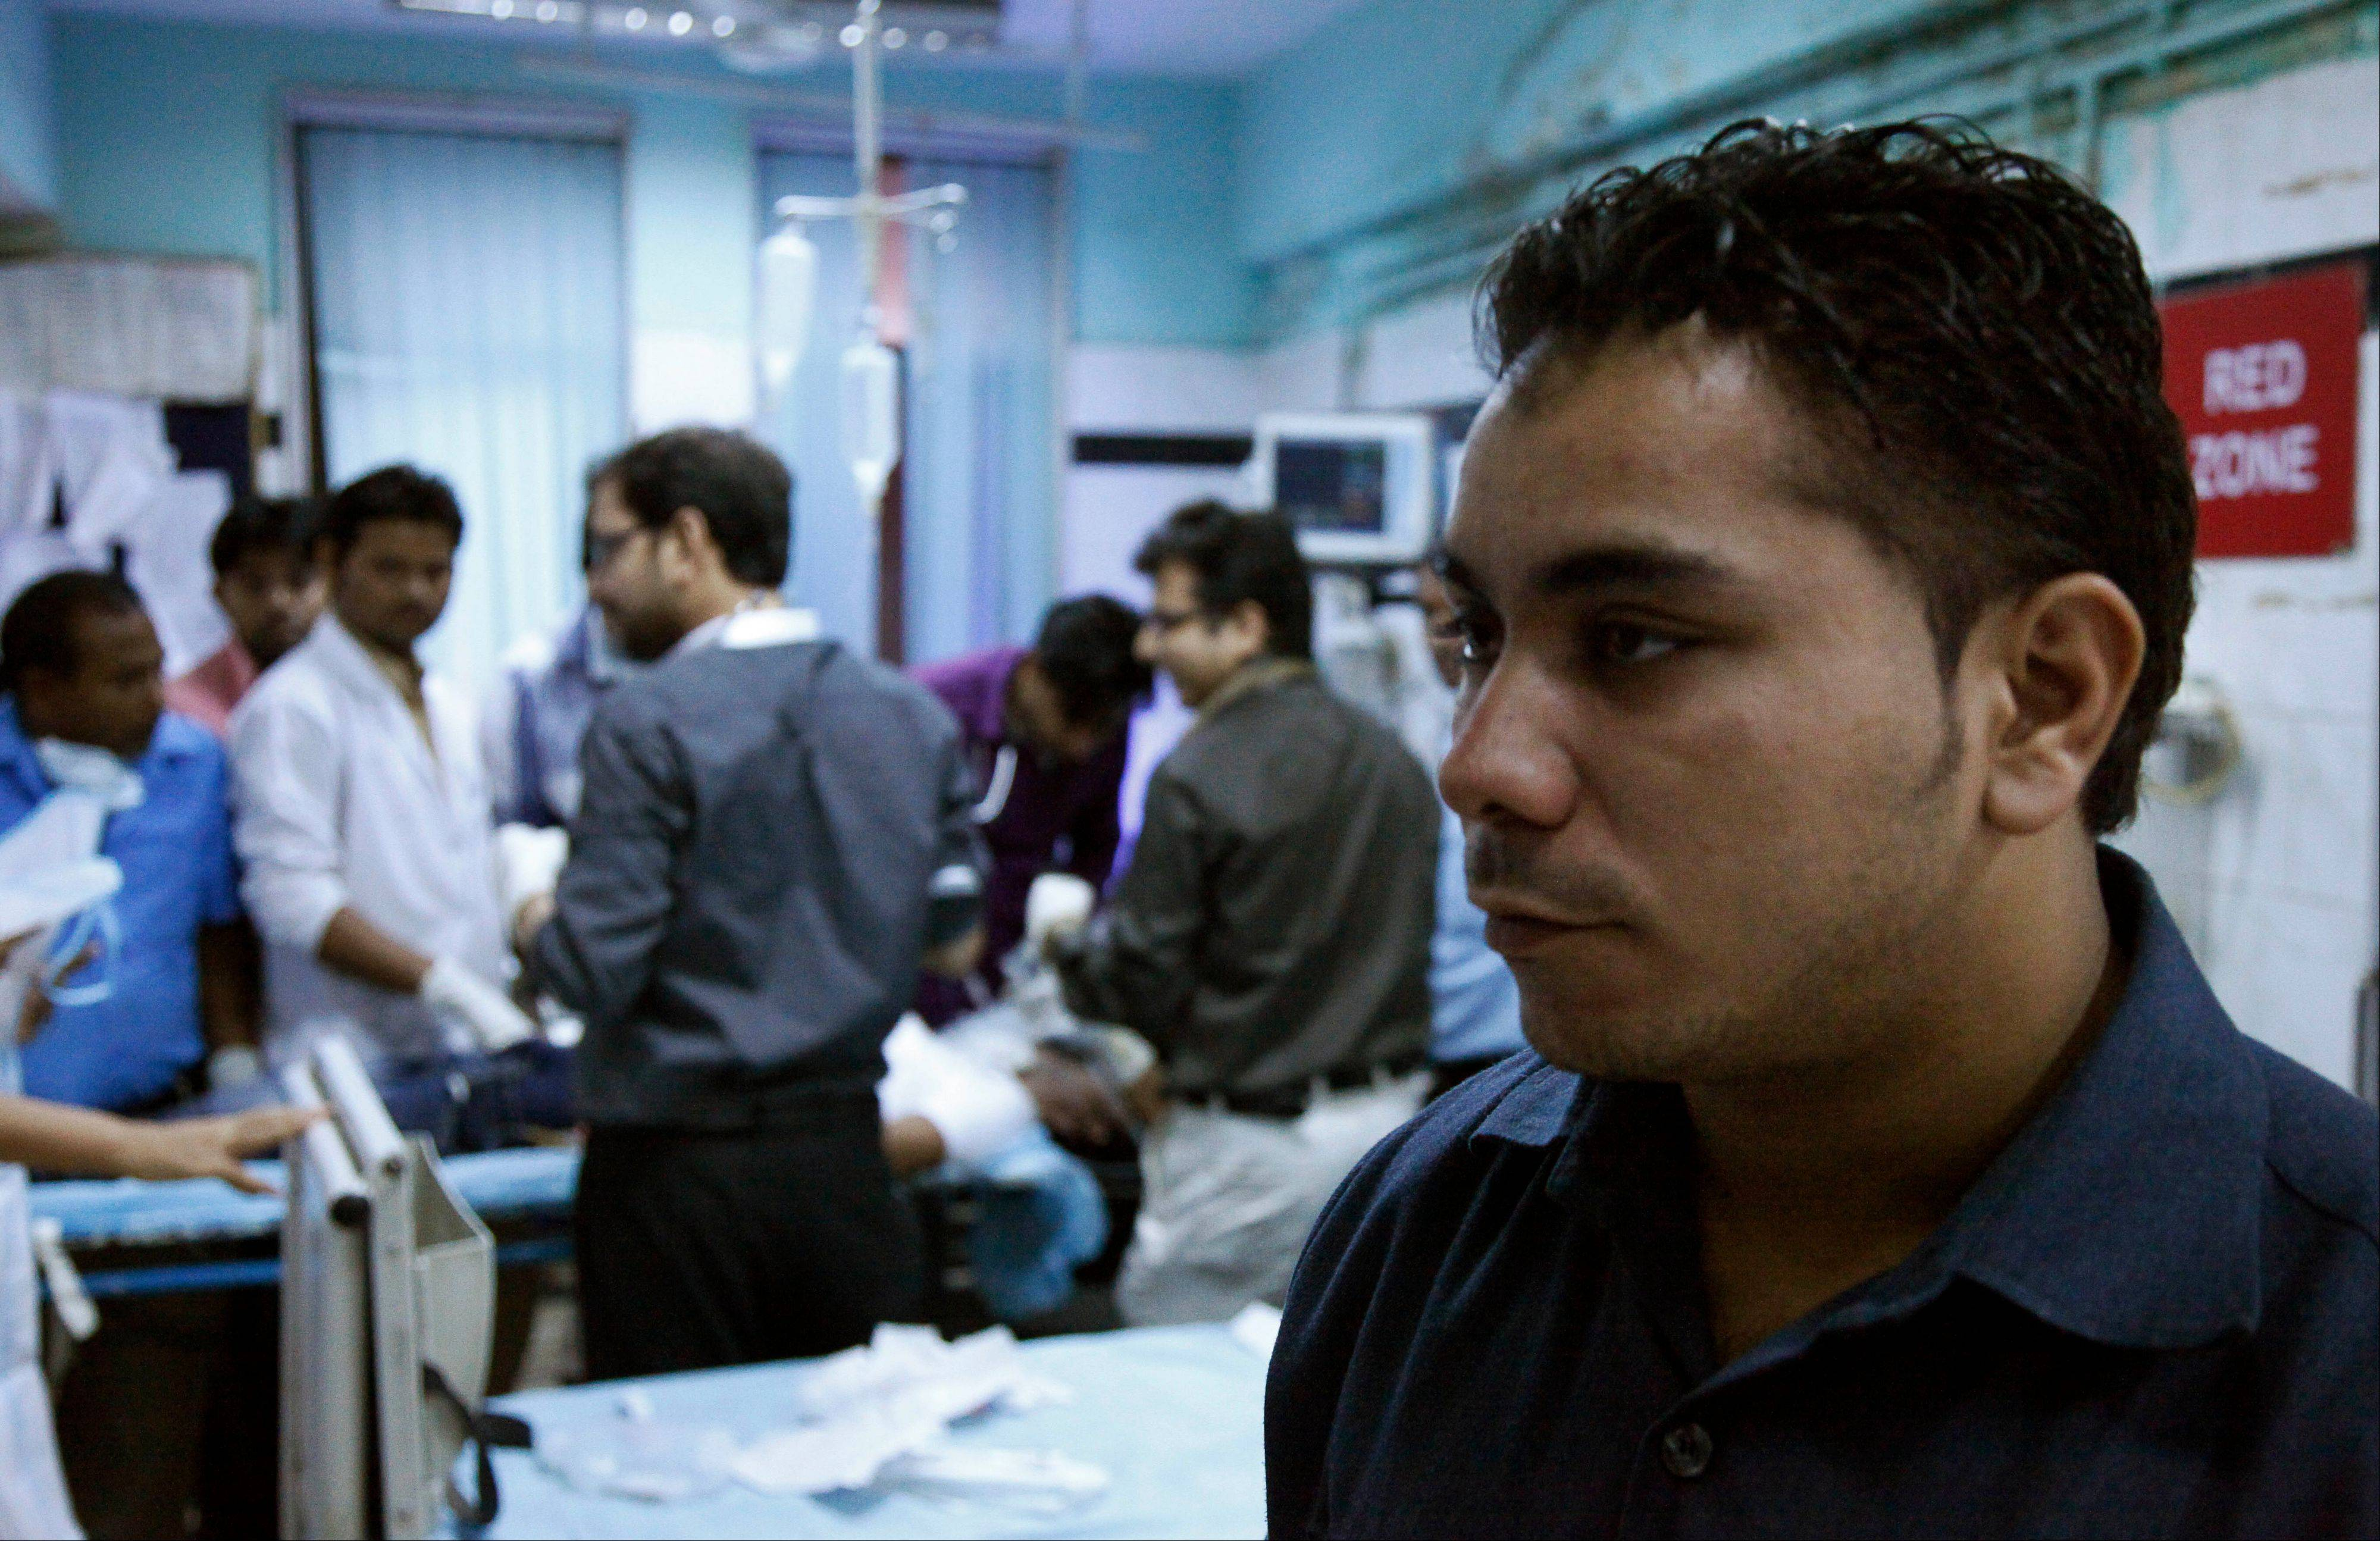 Amarjeet Singh, right, stands guard inside the emergency room at the Deen Dayal Upadhyay Hospital in New Delhi, India.